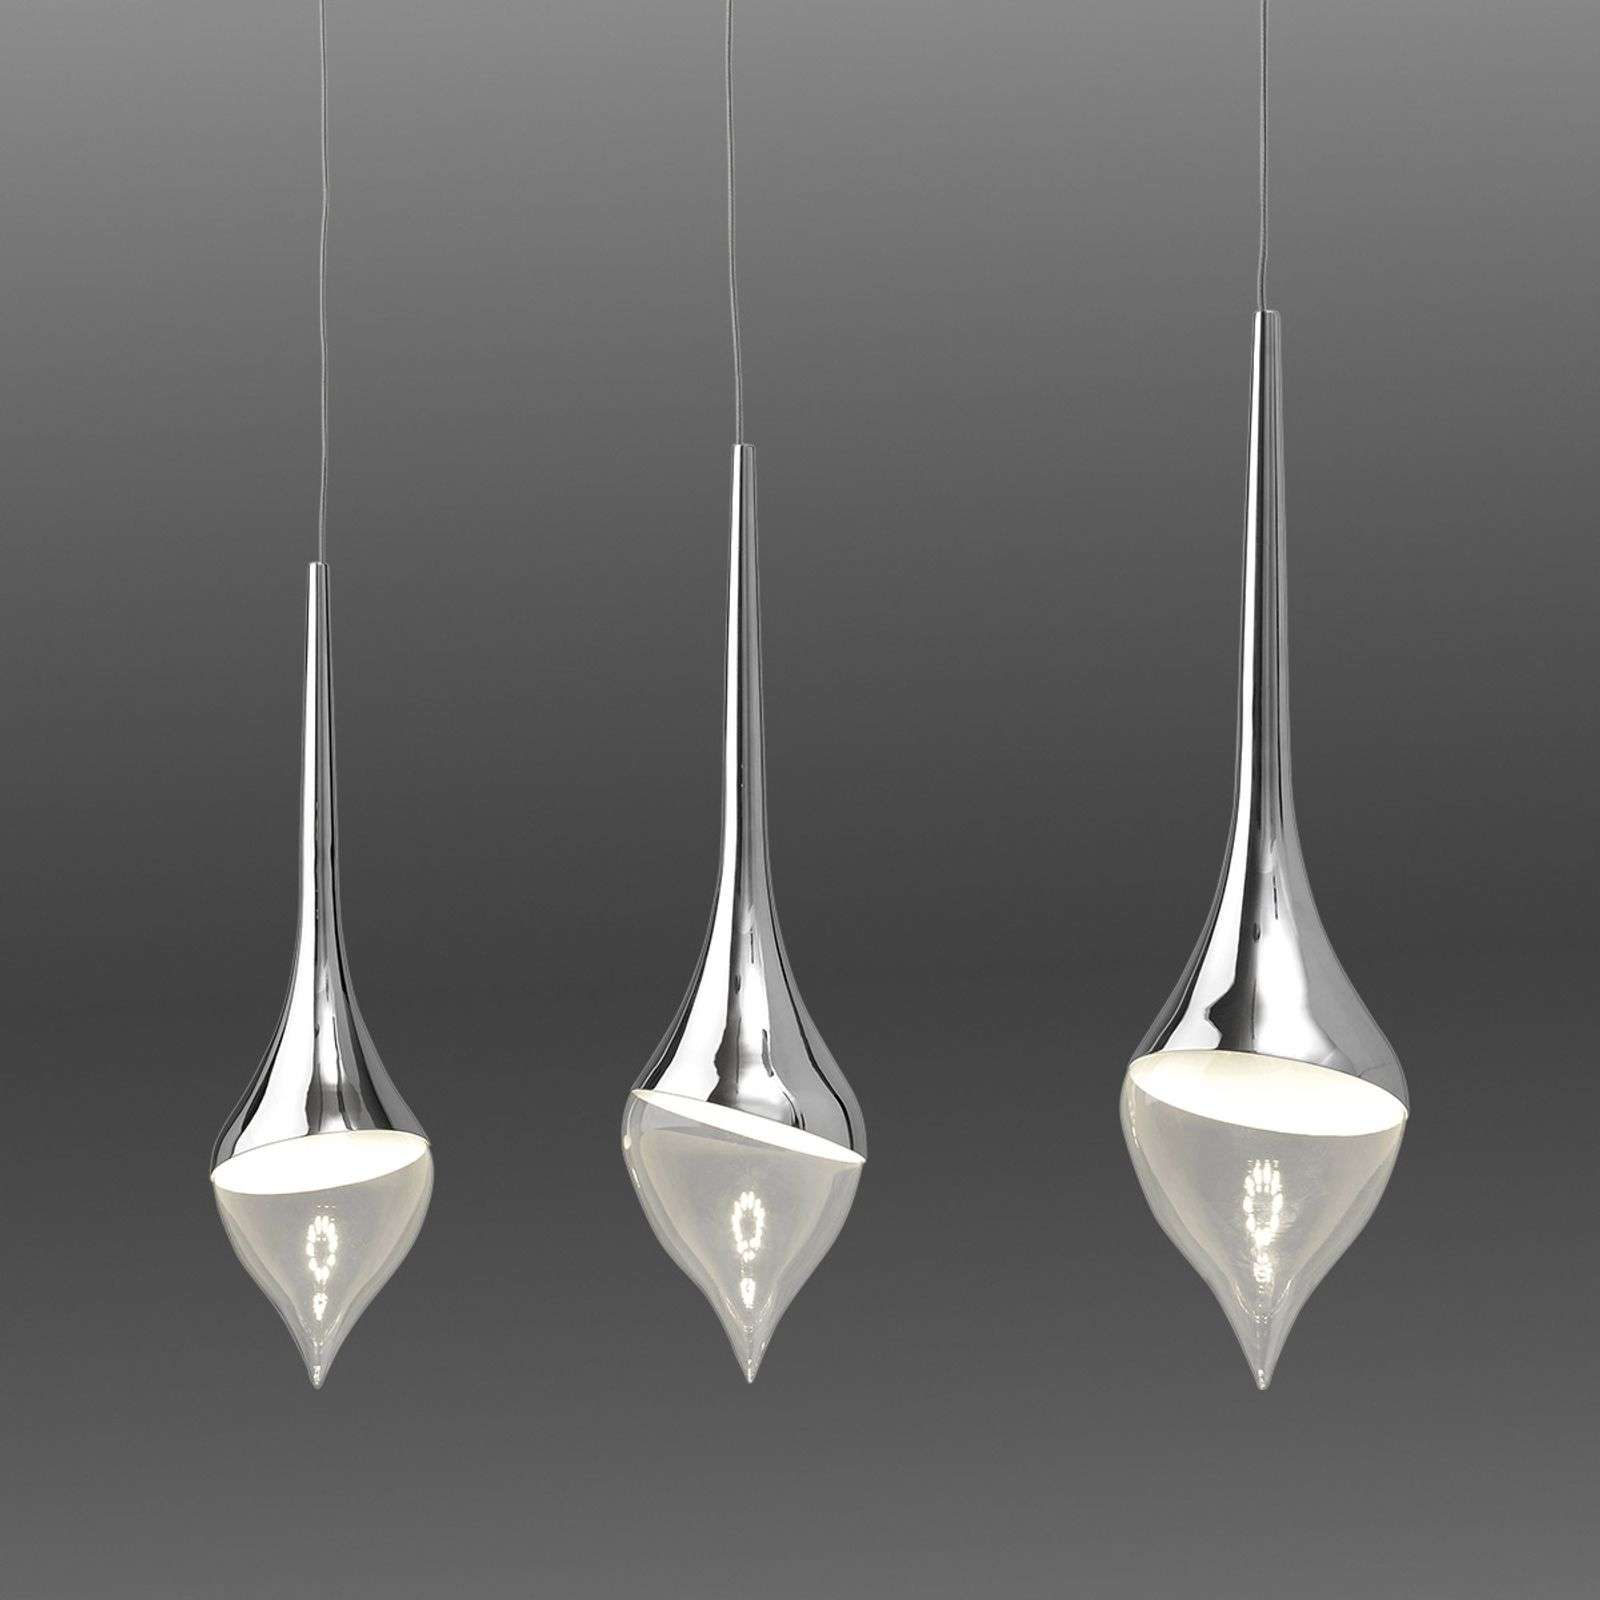 Suspension LED Tear, 3 lampes